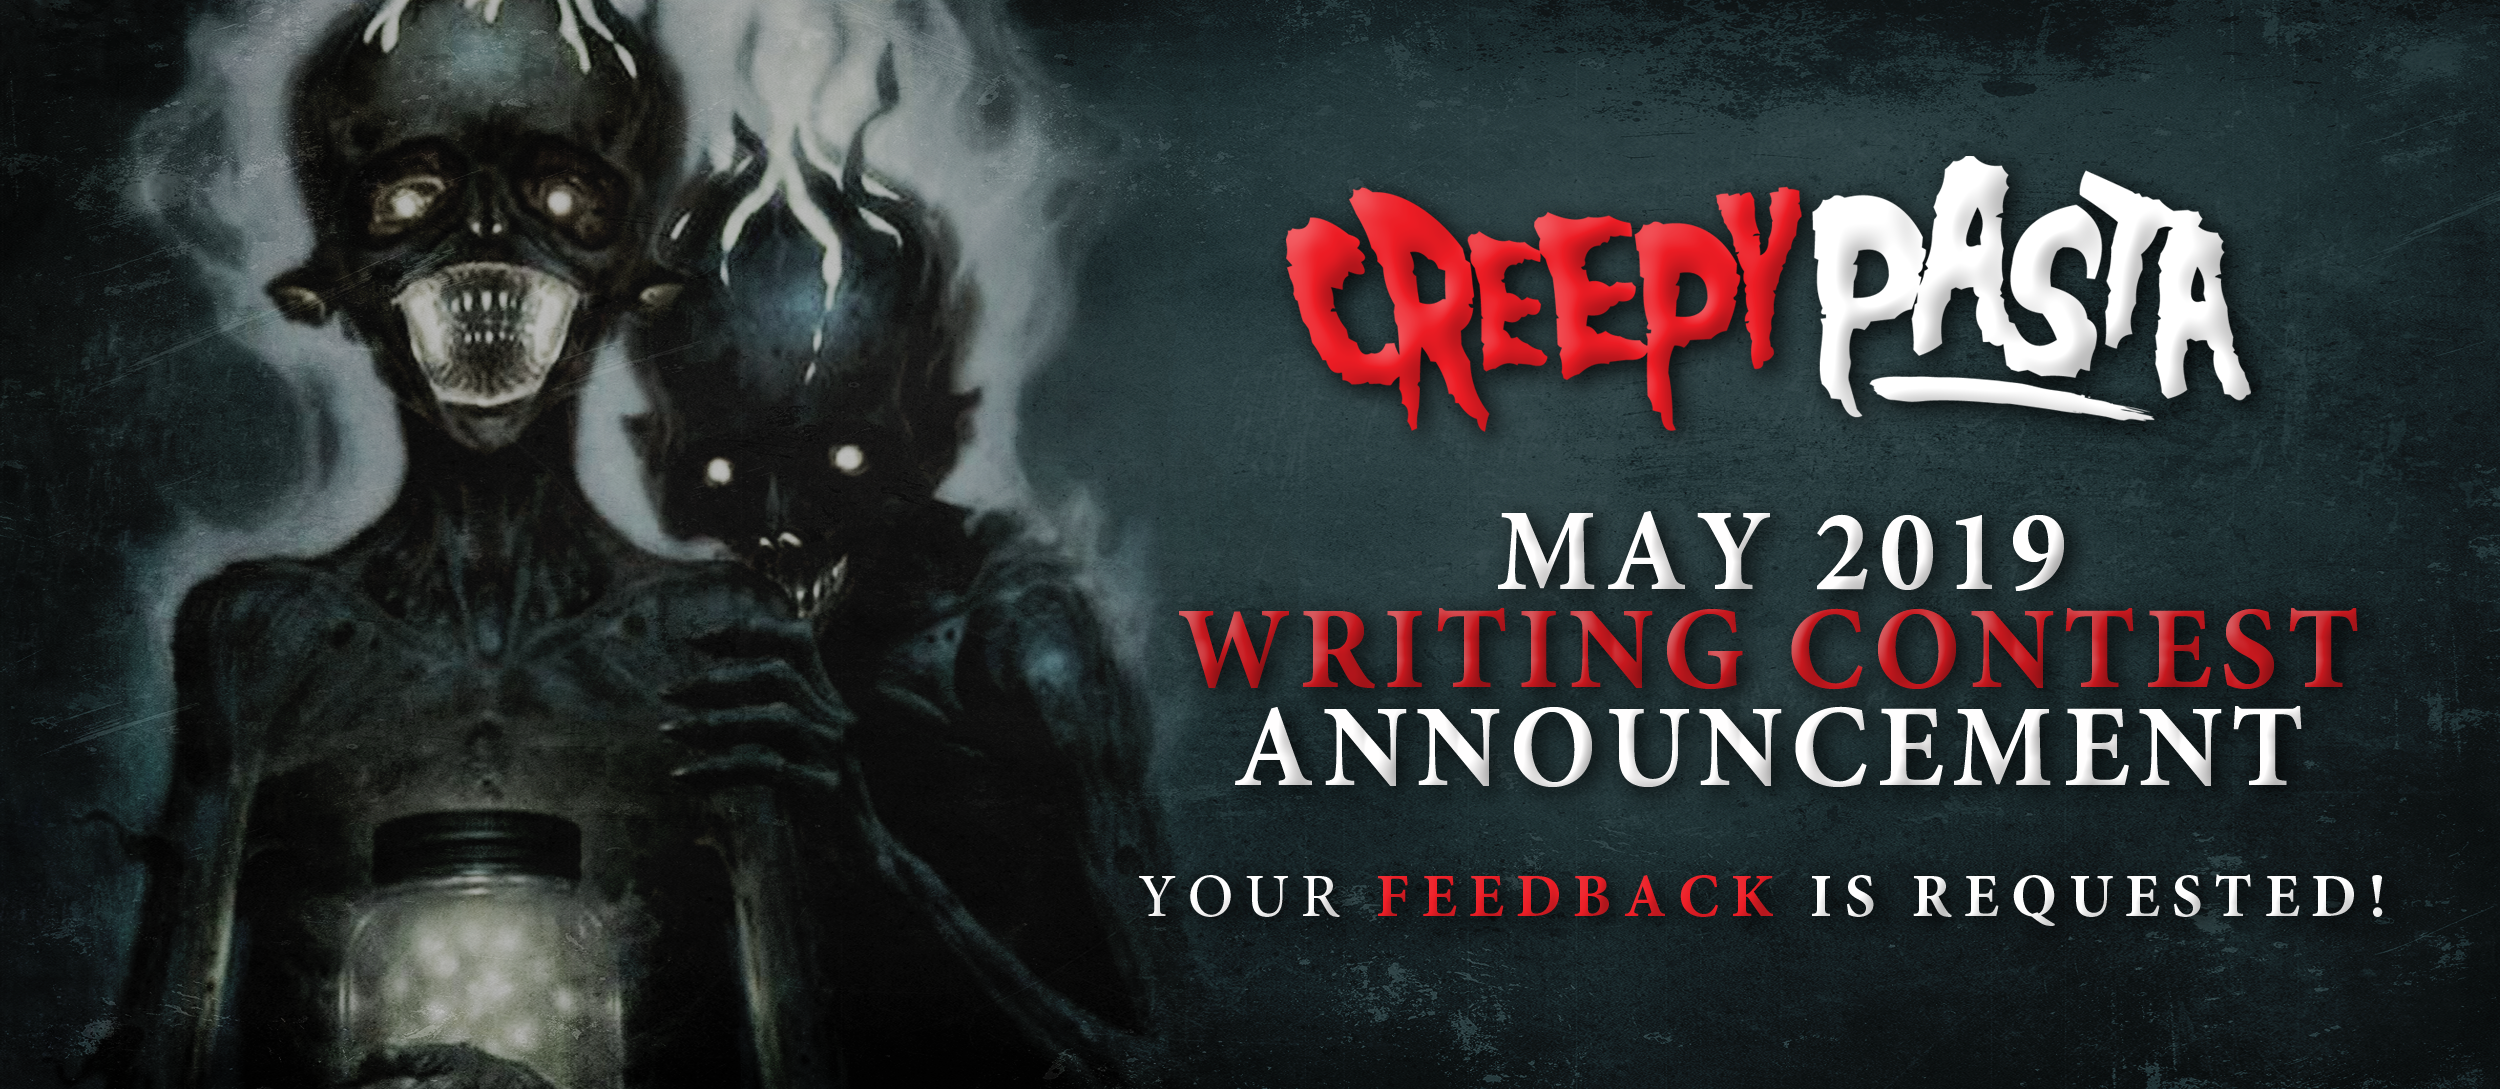 May 2019 Creepypasta Horror Fiction Writing Contest Announcement